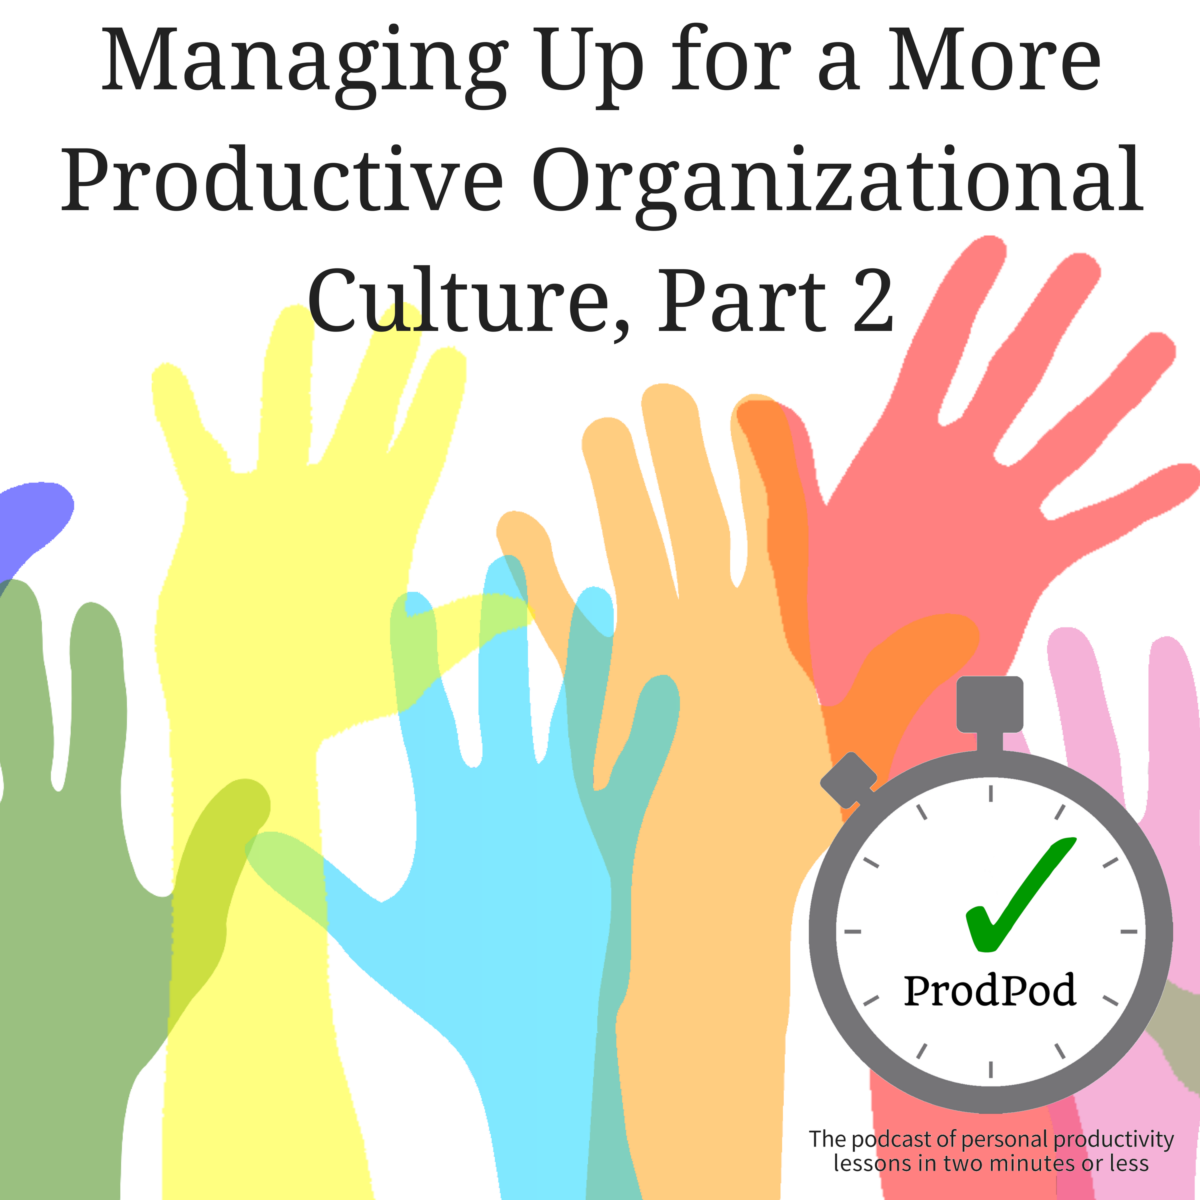 Managing Up for a More Productive Organizational Culture - Part 2 - ProdPod